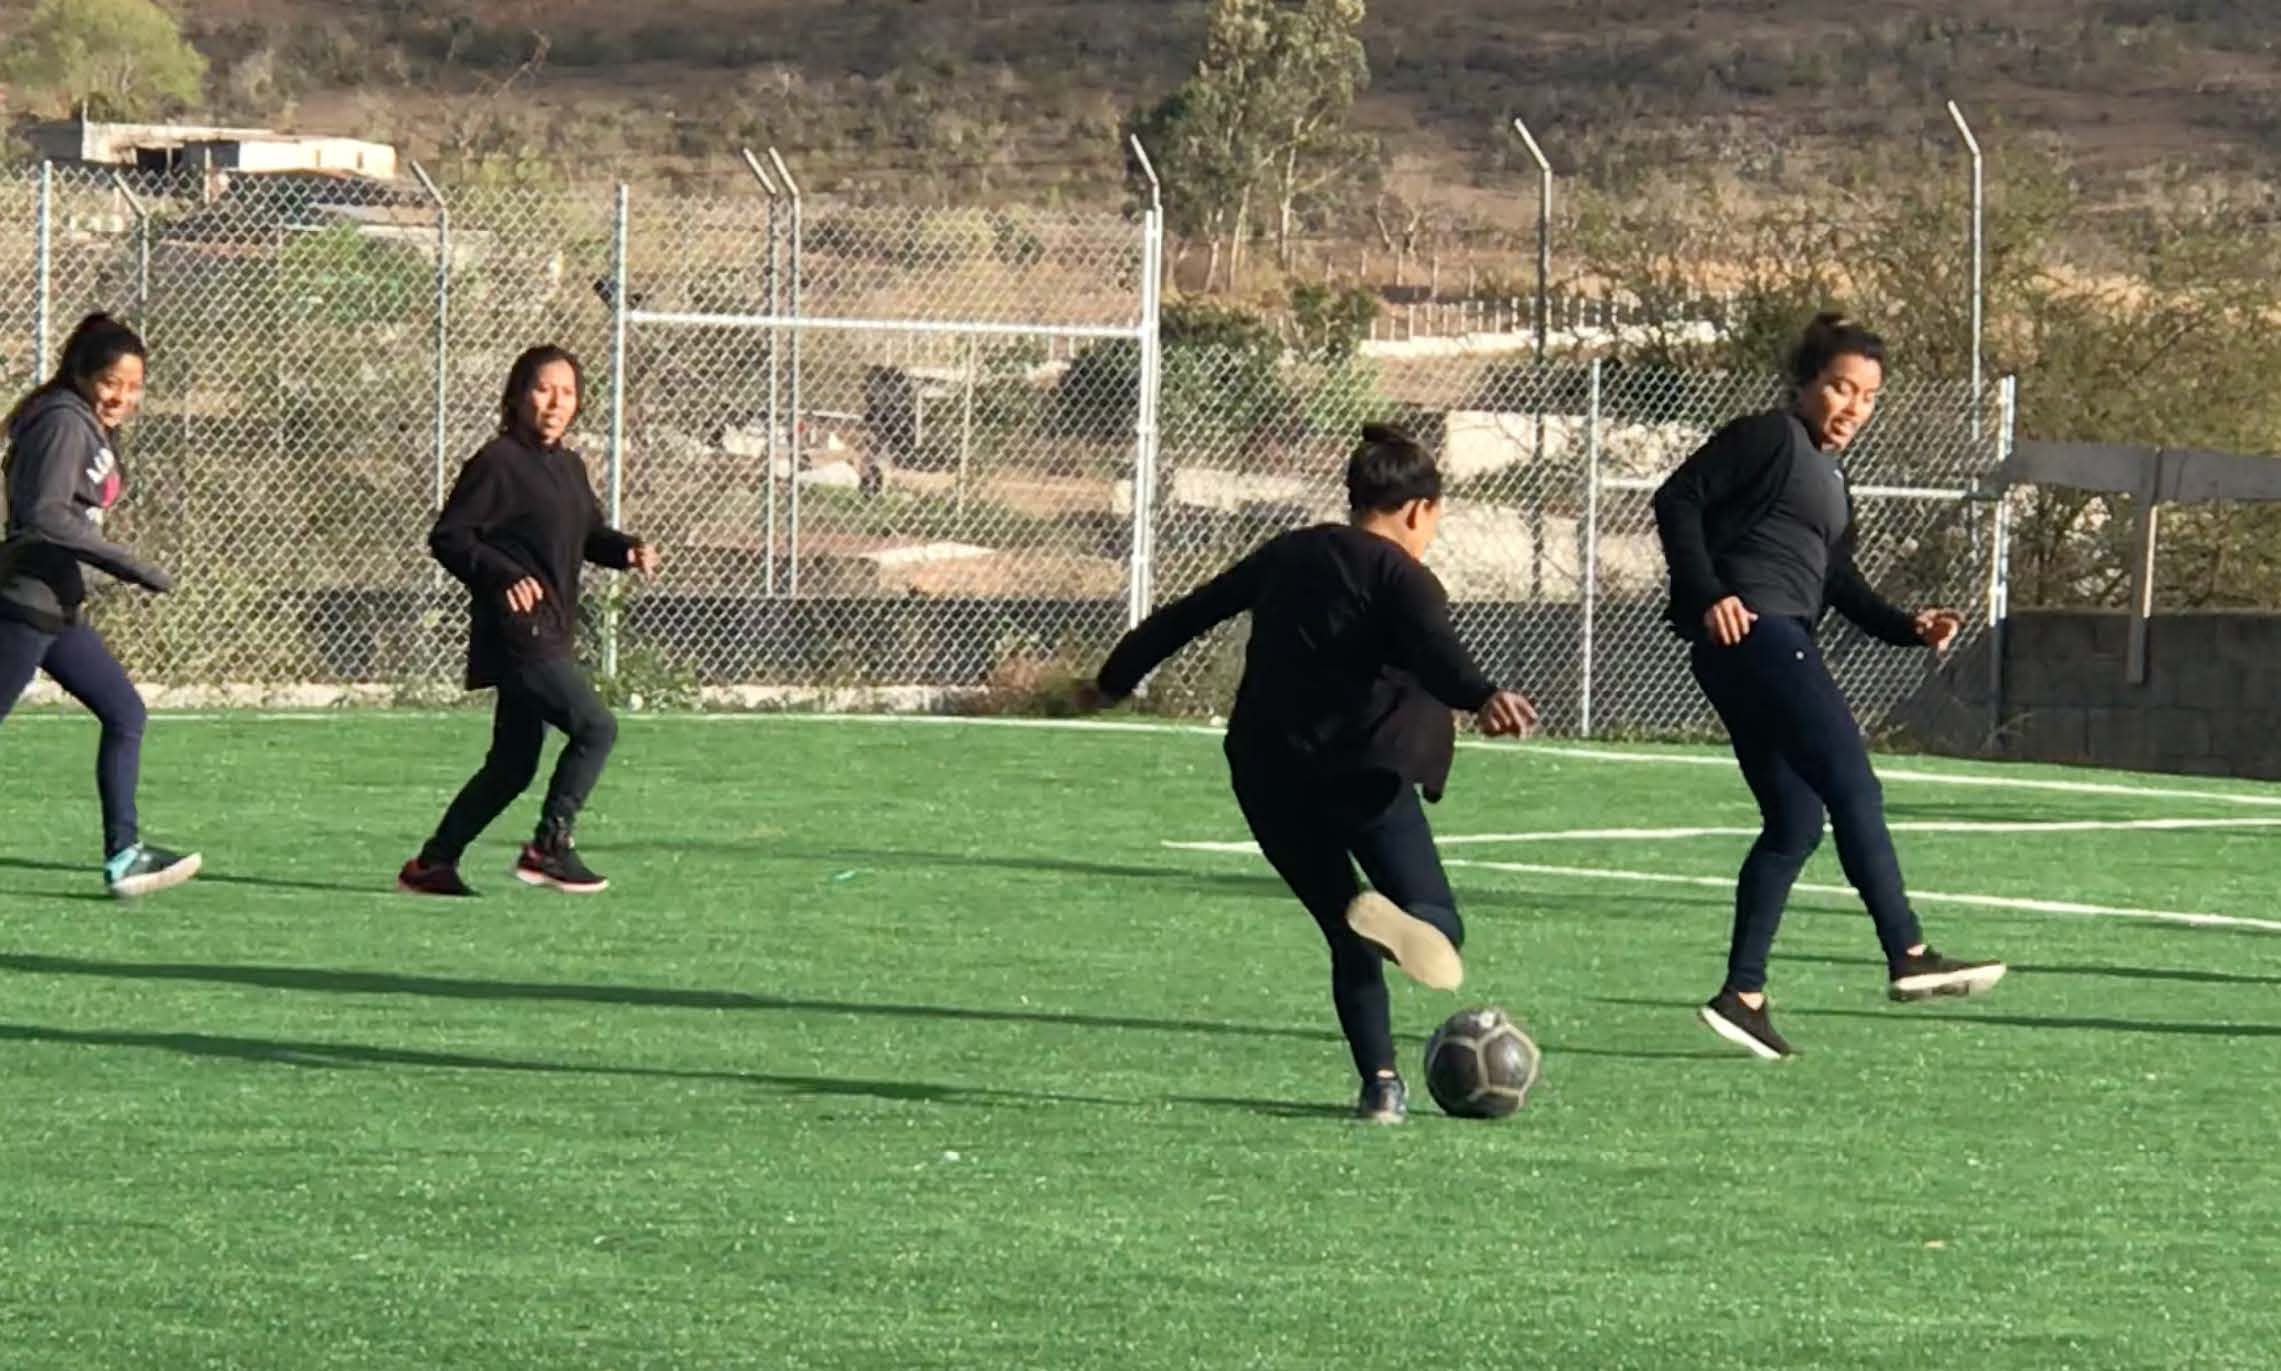 Carolina, Maria, Ilma, and Emili unwinding at the end of the work week with a soccer scramble